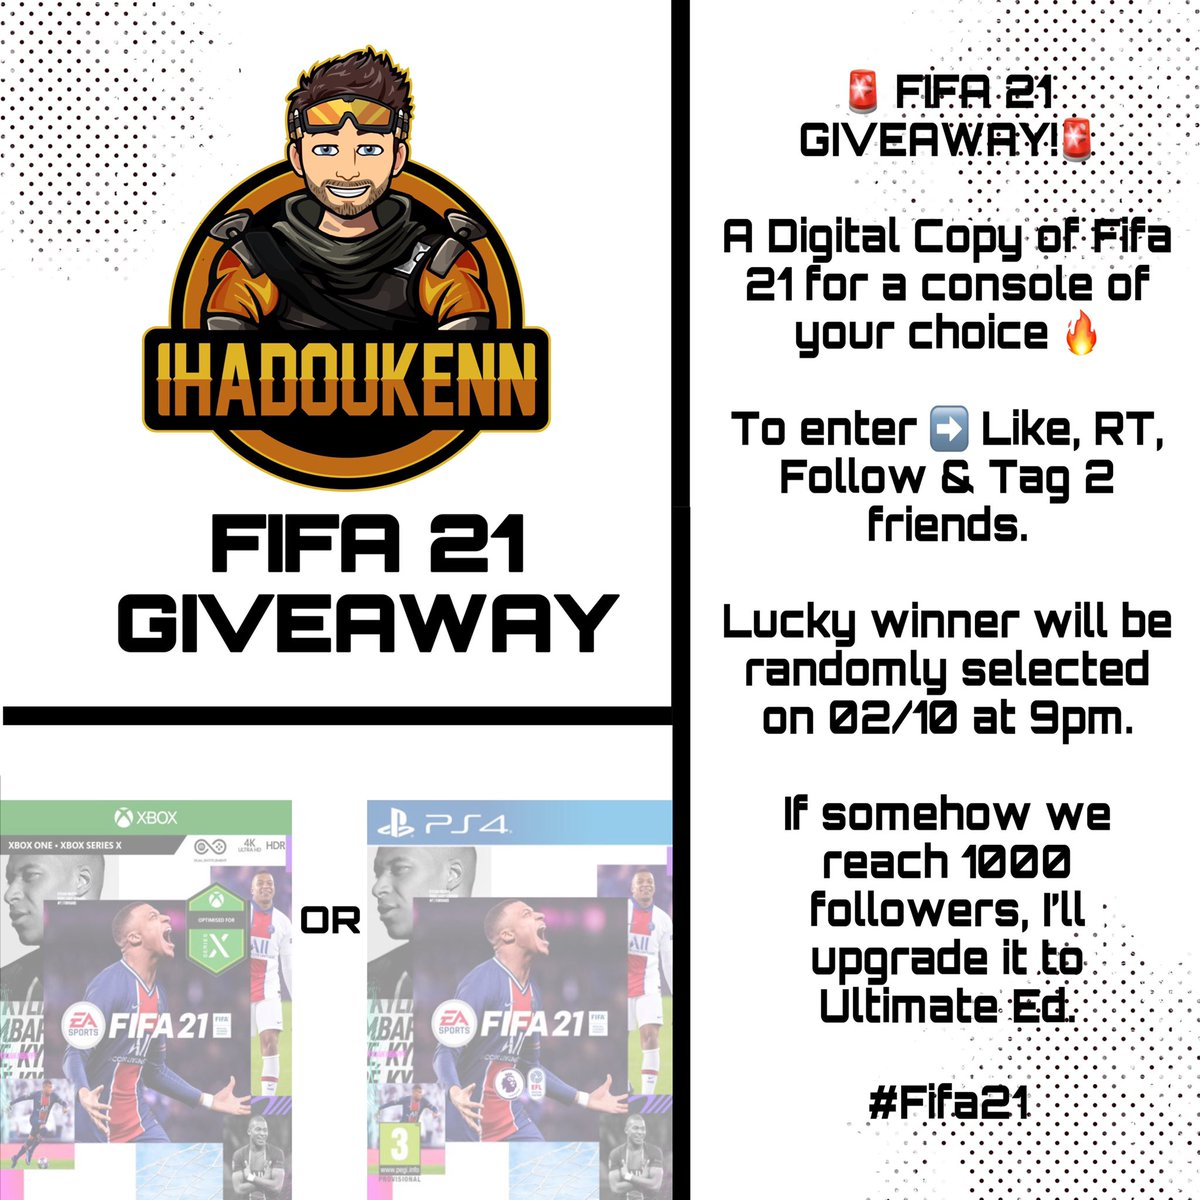 🚨 FIFA 21 GIVEAWAY!🚨  To enter ➡️ Like, RT, Follow & Tag 2 friends.   Lucky winner will be randomly selected on 02/10 at 9pm.   If somehow we reach 1000 followers (Insane but this community can do it 🔥), I'll upgrade it to the Ultimate Edition!   #Fifa21 https://t.co/Wh5UUL1el7